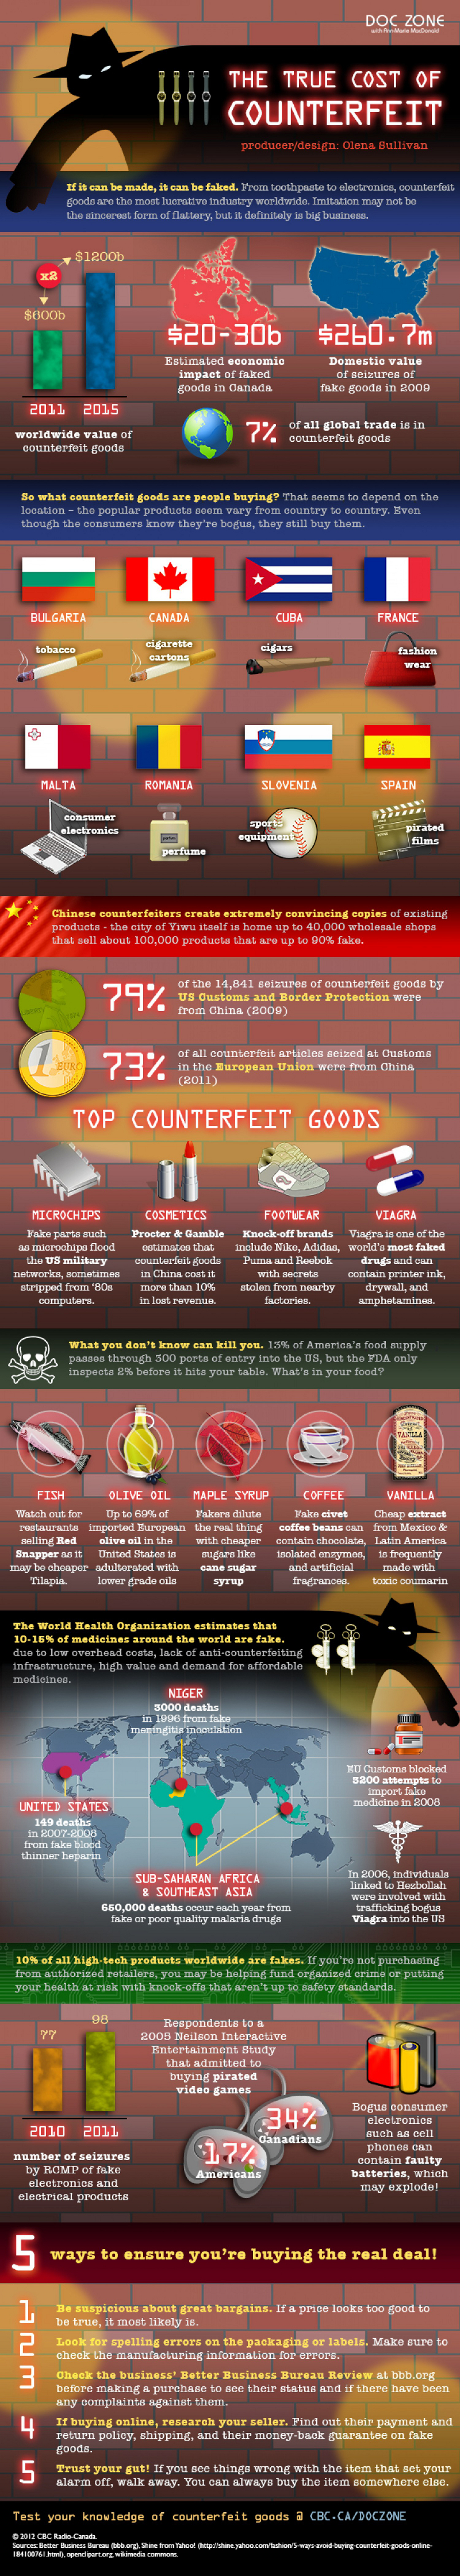 Counterfeit Industry Facts